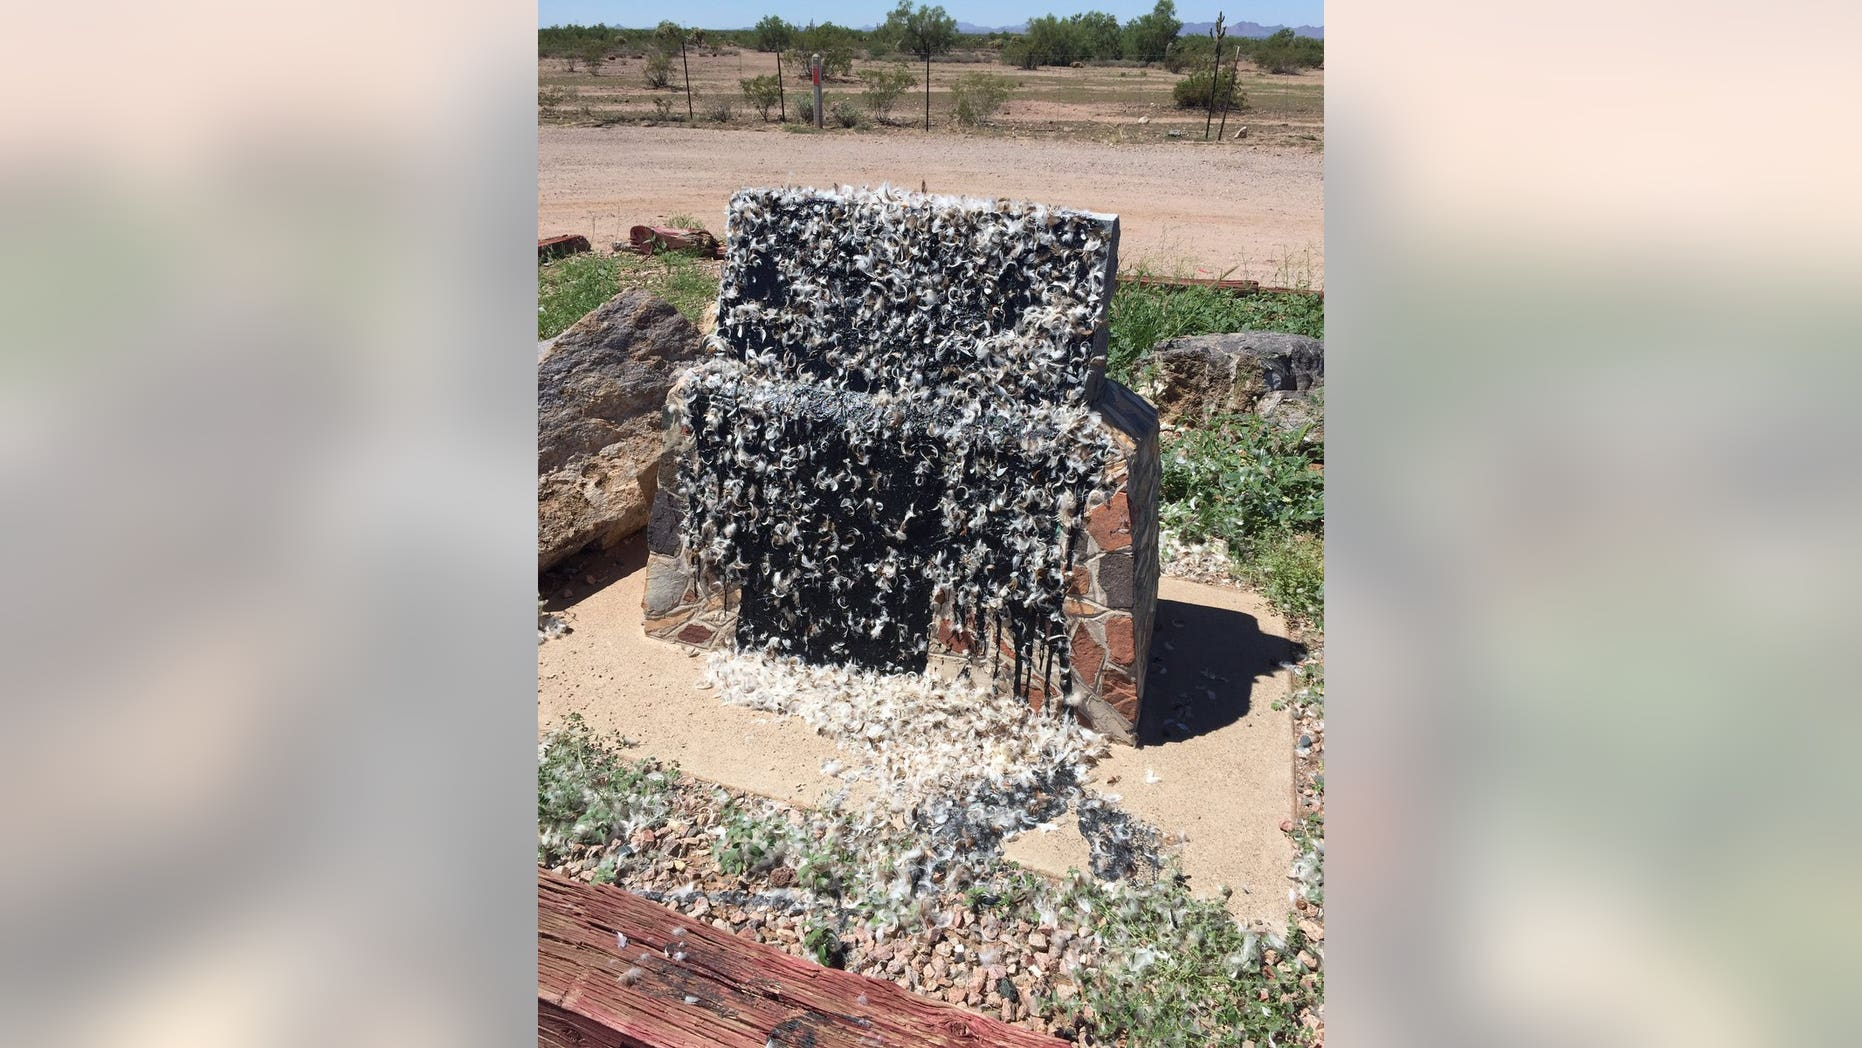 A Confederate monument located on a highway in Arizona was vandalized, tarred and feathered.